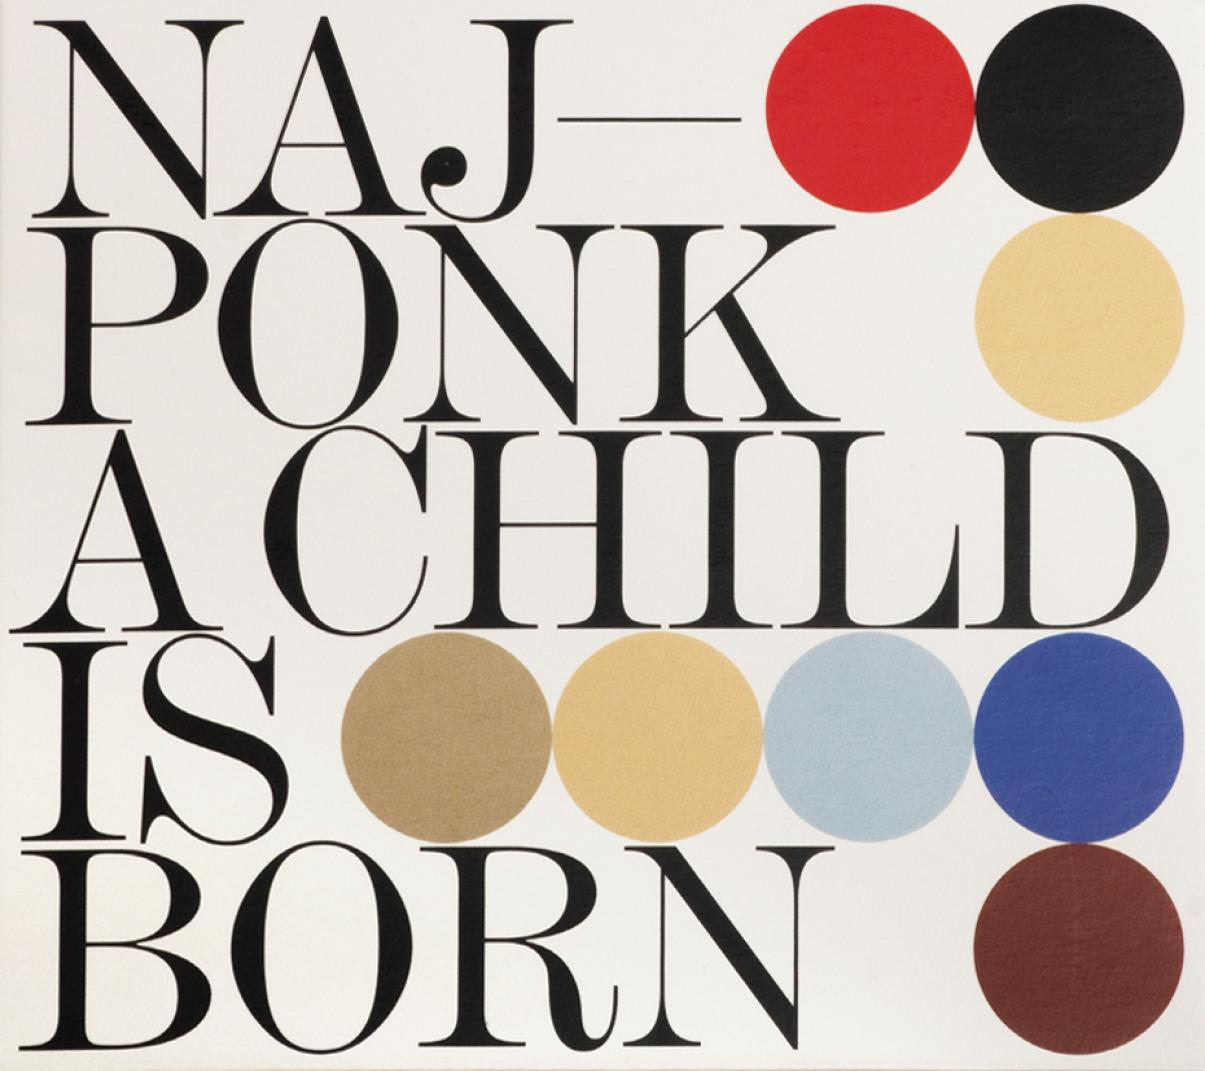 Najponk: A Child Is Born